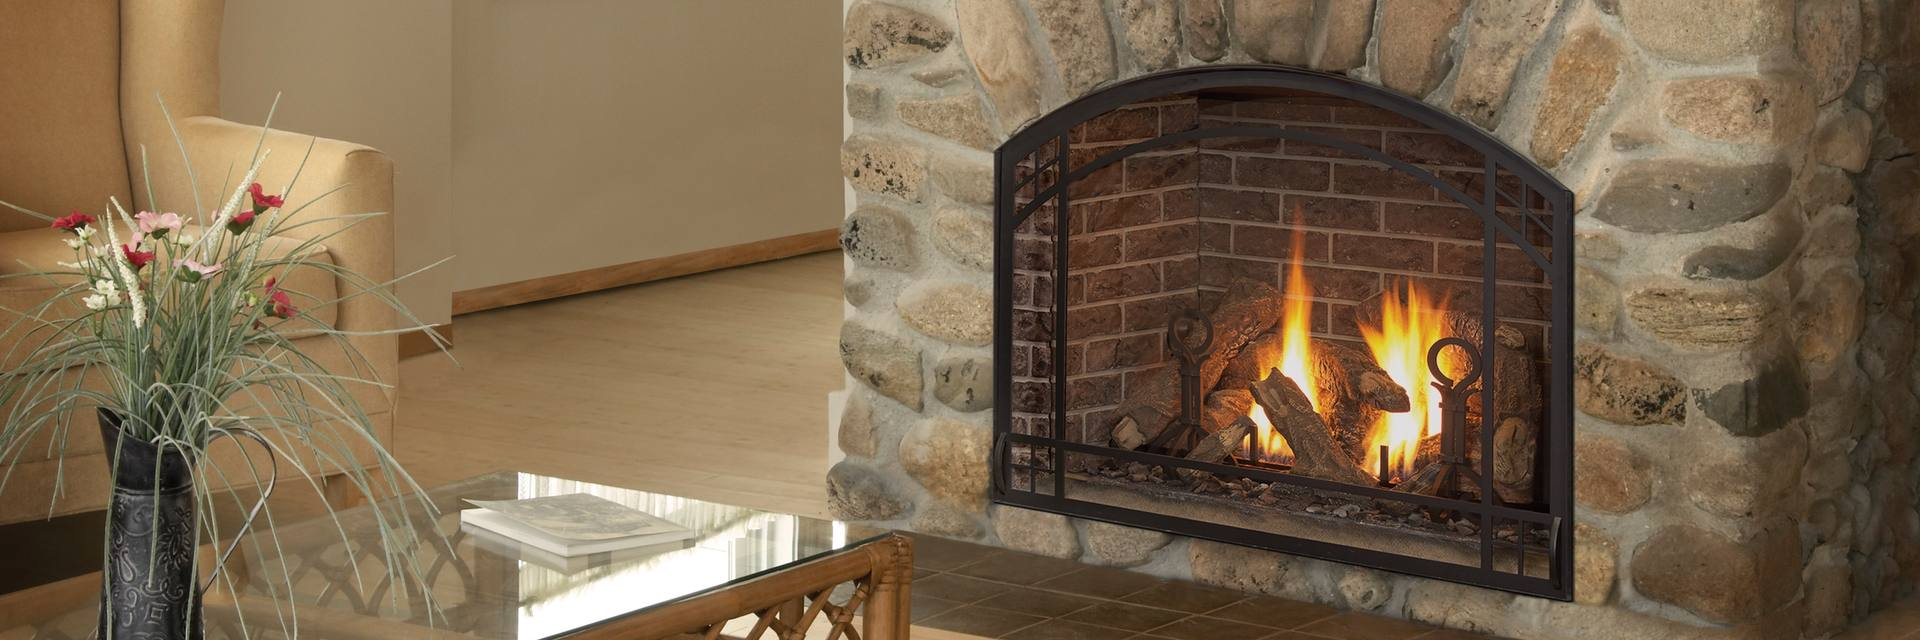 Enjoyable Buck Factory Outlet Fireplaces Stoves Inserts Bbqs Home Interior And Landscaping Ologienasavecom